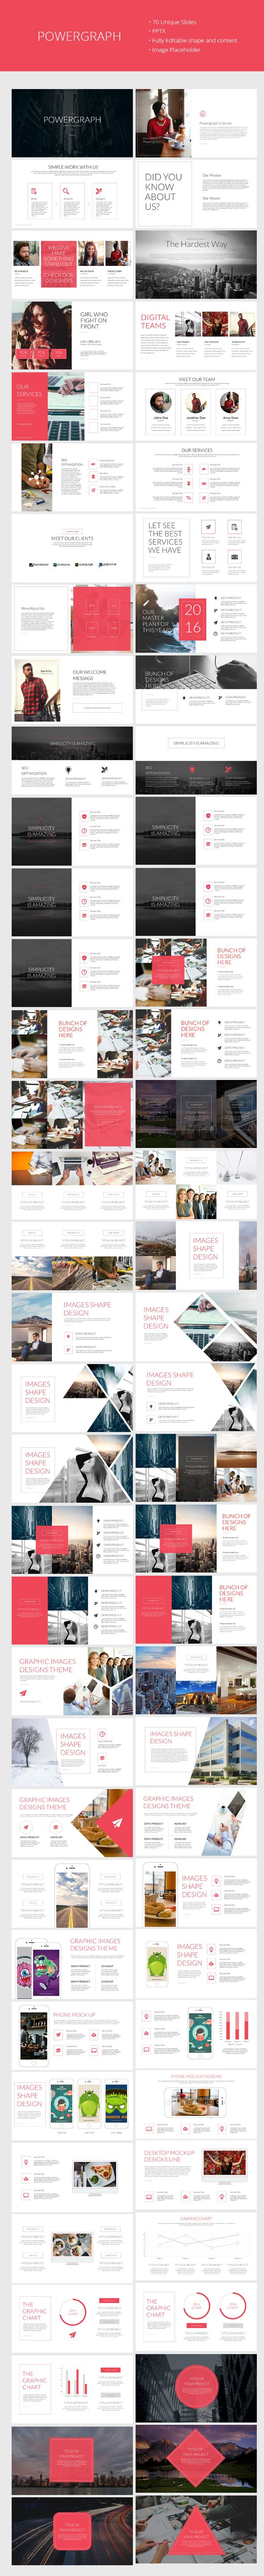 Powergraph Clean Powerpoint Template - PowerPoint Templates Presentation…